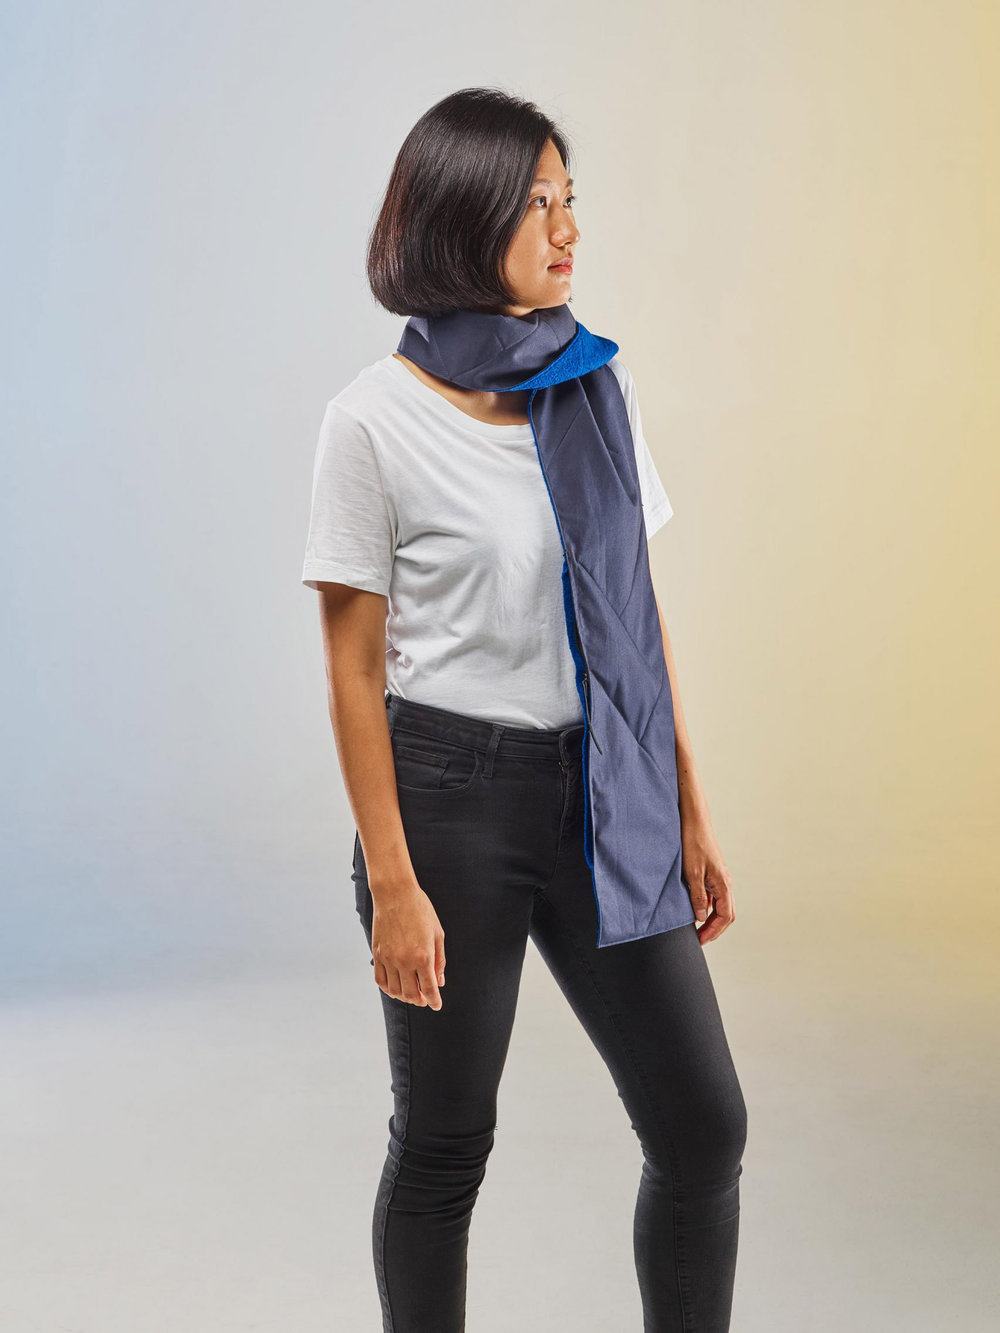 ECAL-and-QWSTION_catarinapacheco_traveller_scarf_1.jpg